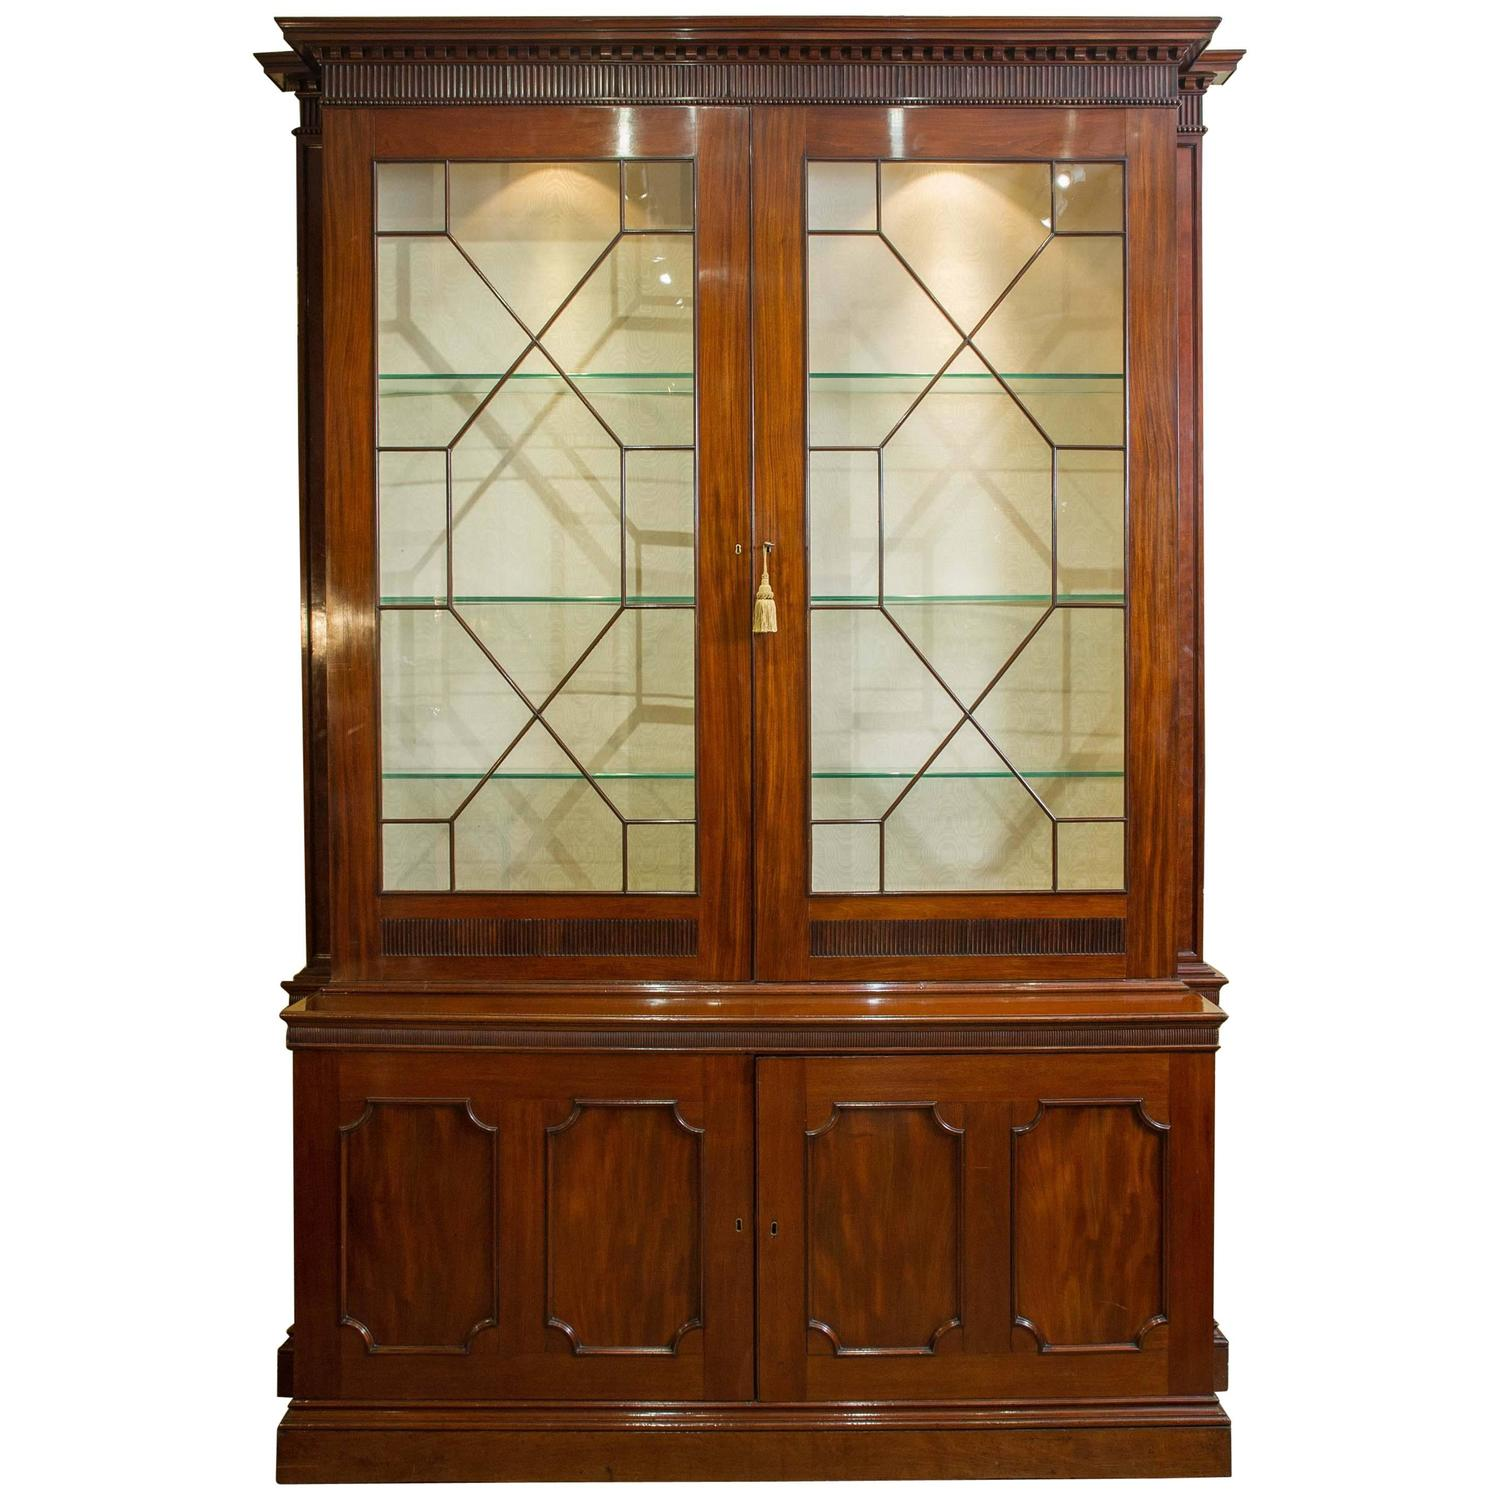 Mid 18th C Mahogany Bookcase With Dentil Cornice Detail